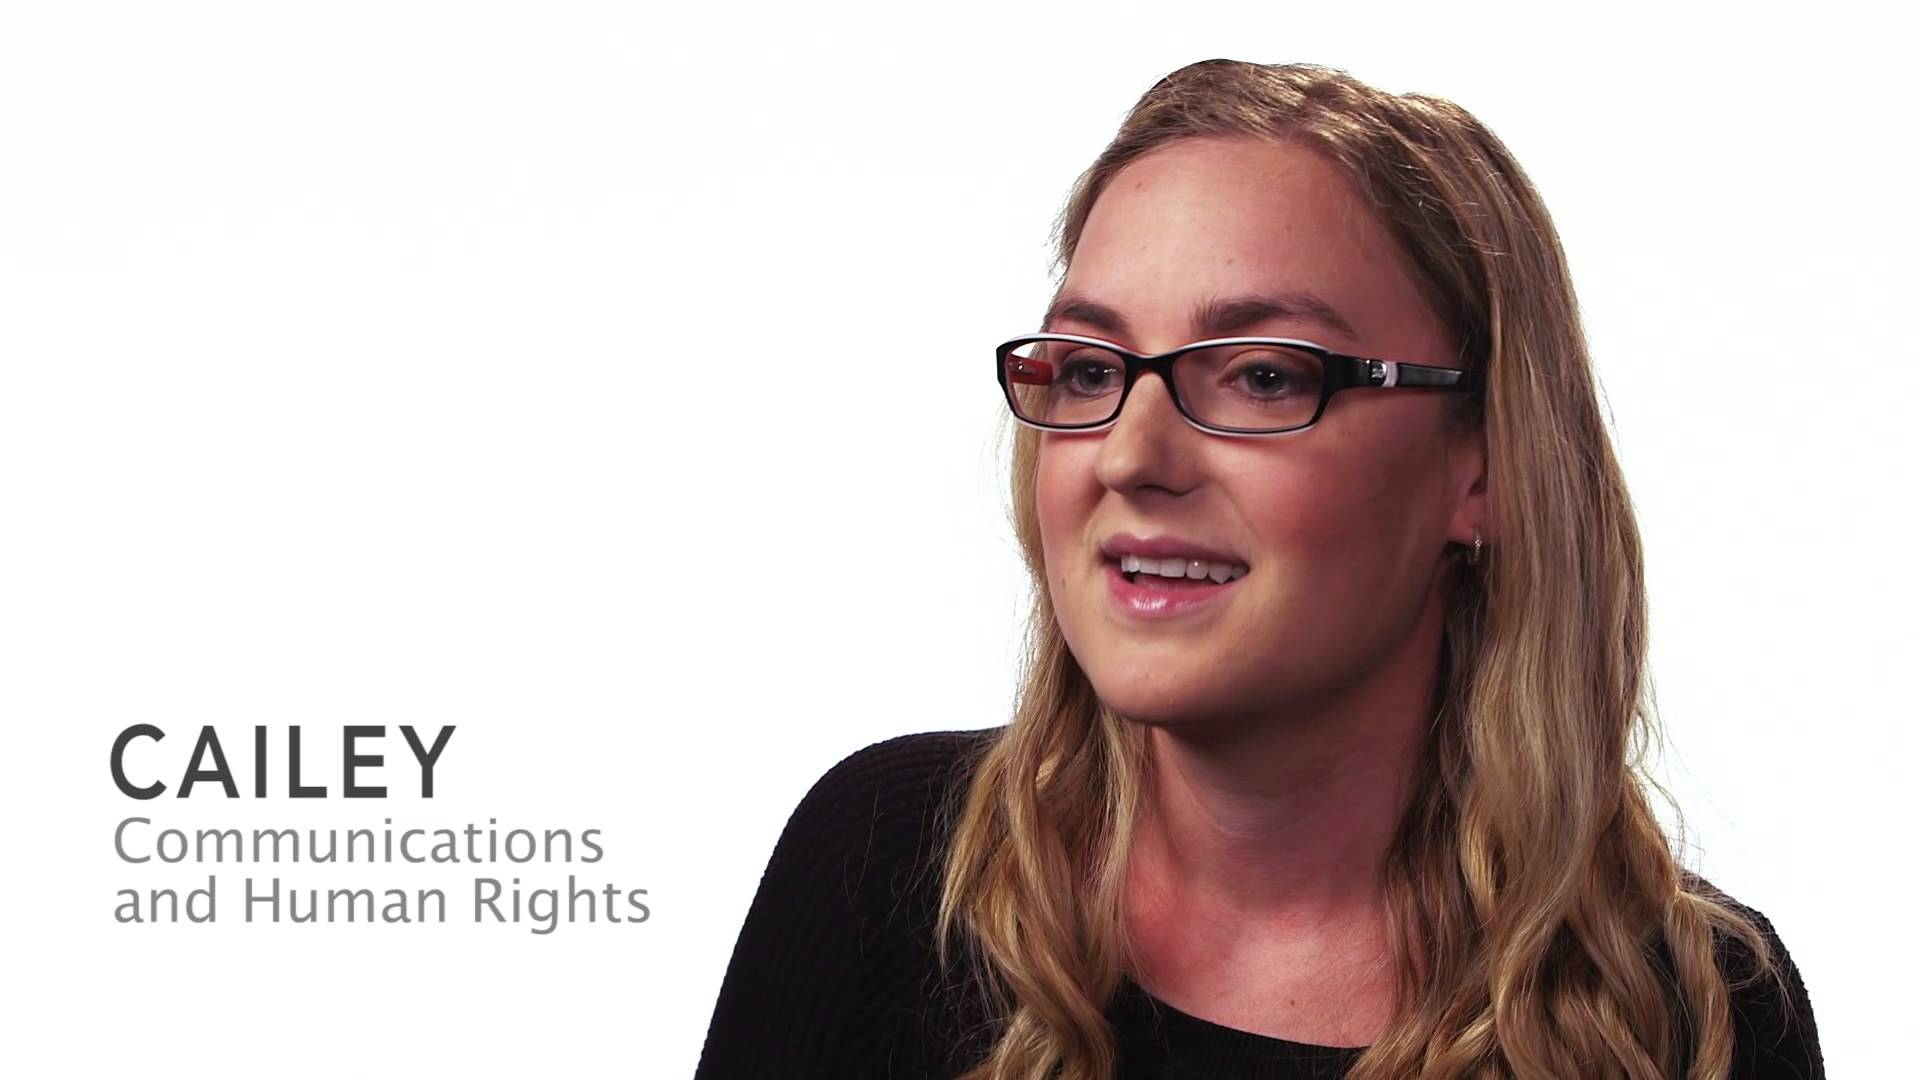 Watch Video: Carleton Stories: Cailey